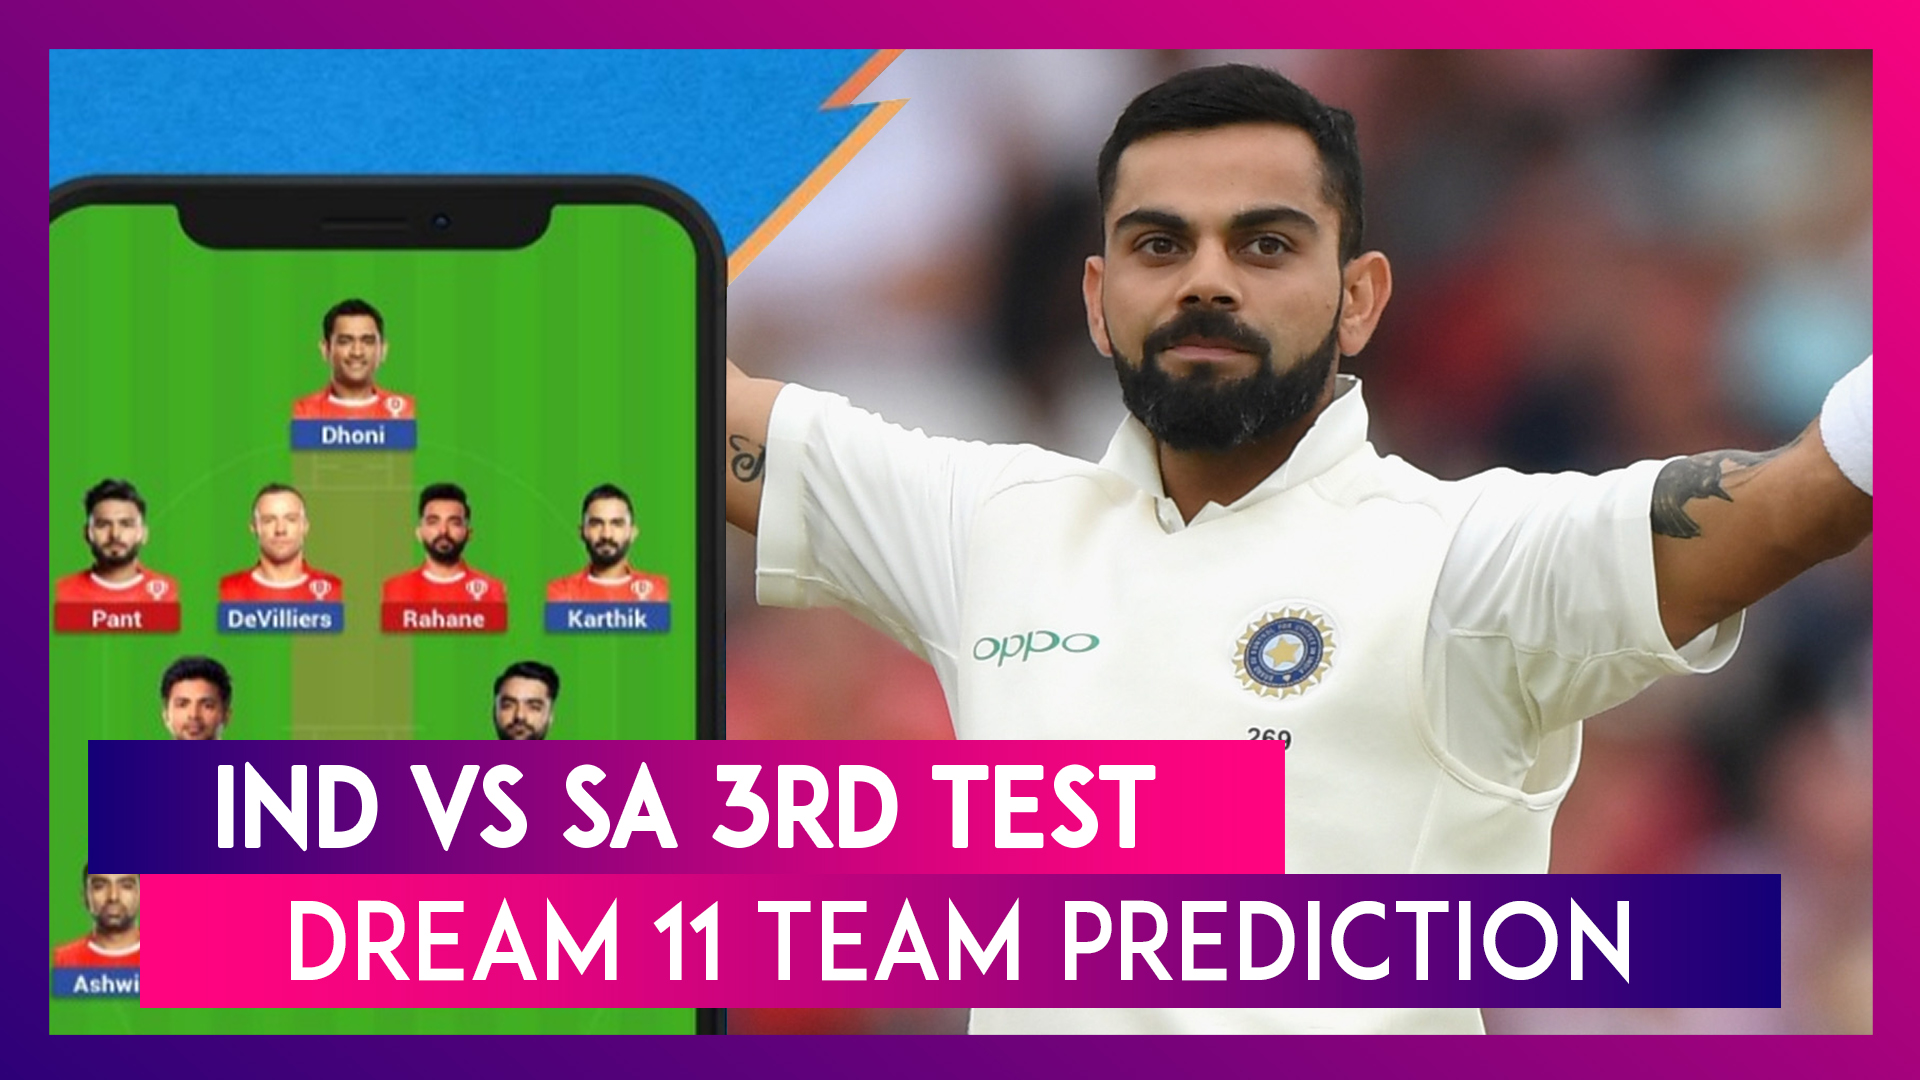 India vs South Africa 3rd Test Dream 11 Team Predictions